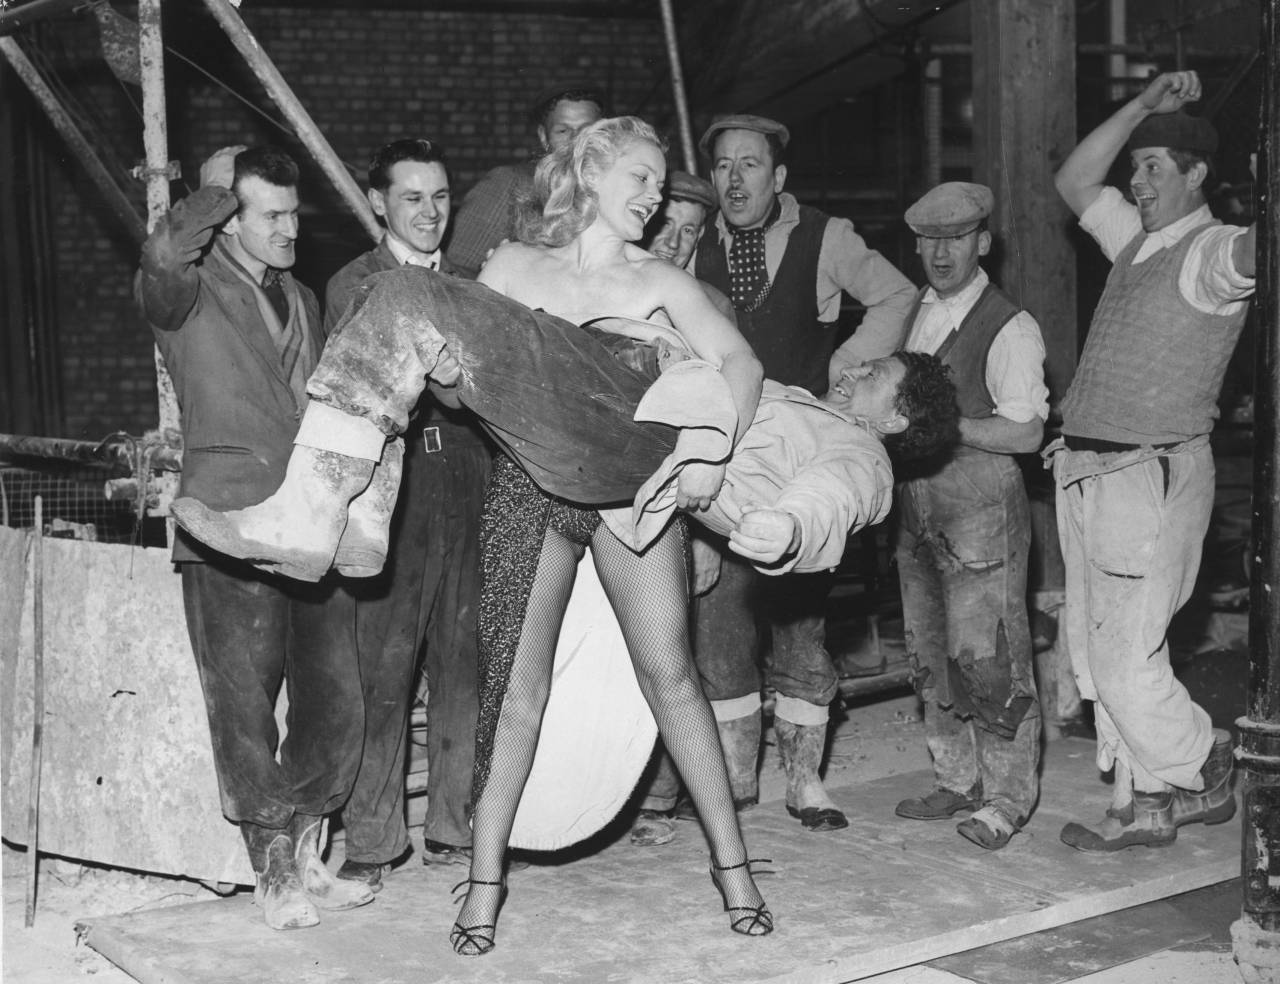 8th April 1958: Men, working on the site of Quaglino's new banqueting rooms, look on in amazement as strong-woman Joan Rhodes demonstrates her strength by lifts one of their co-workers. She is appearing in cabaret at Quaglino's restaurant and decided to visit the men working next door. (Photo by Reg Speller/Fox Photos/Getty Images)